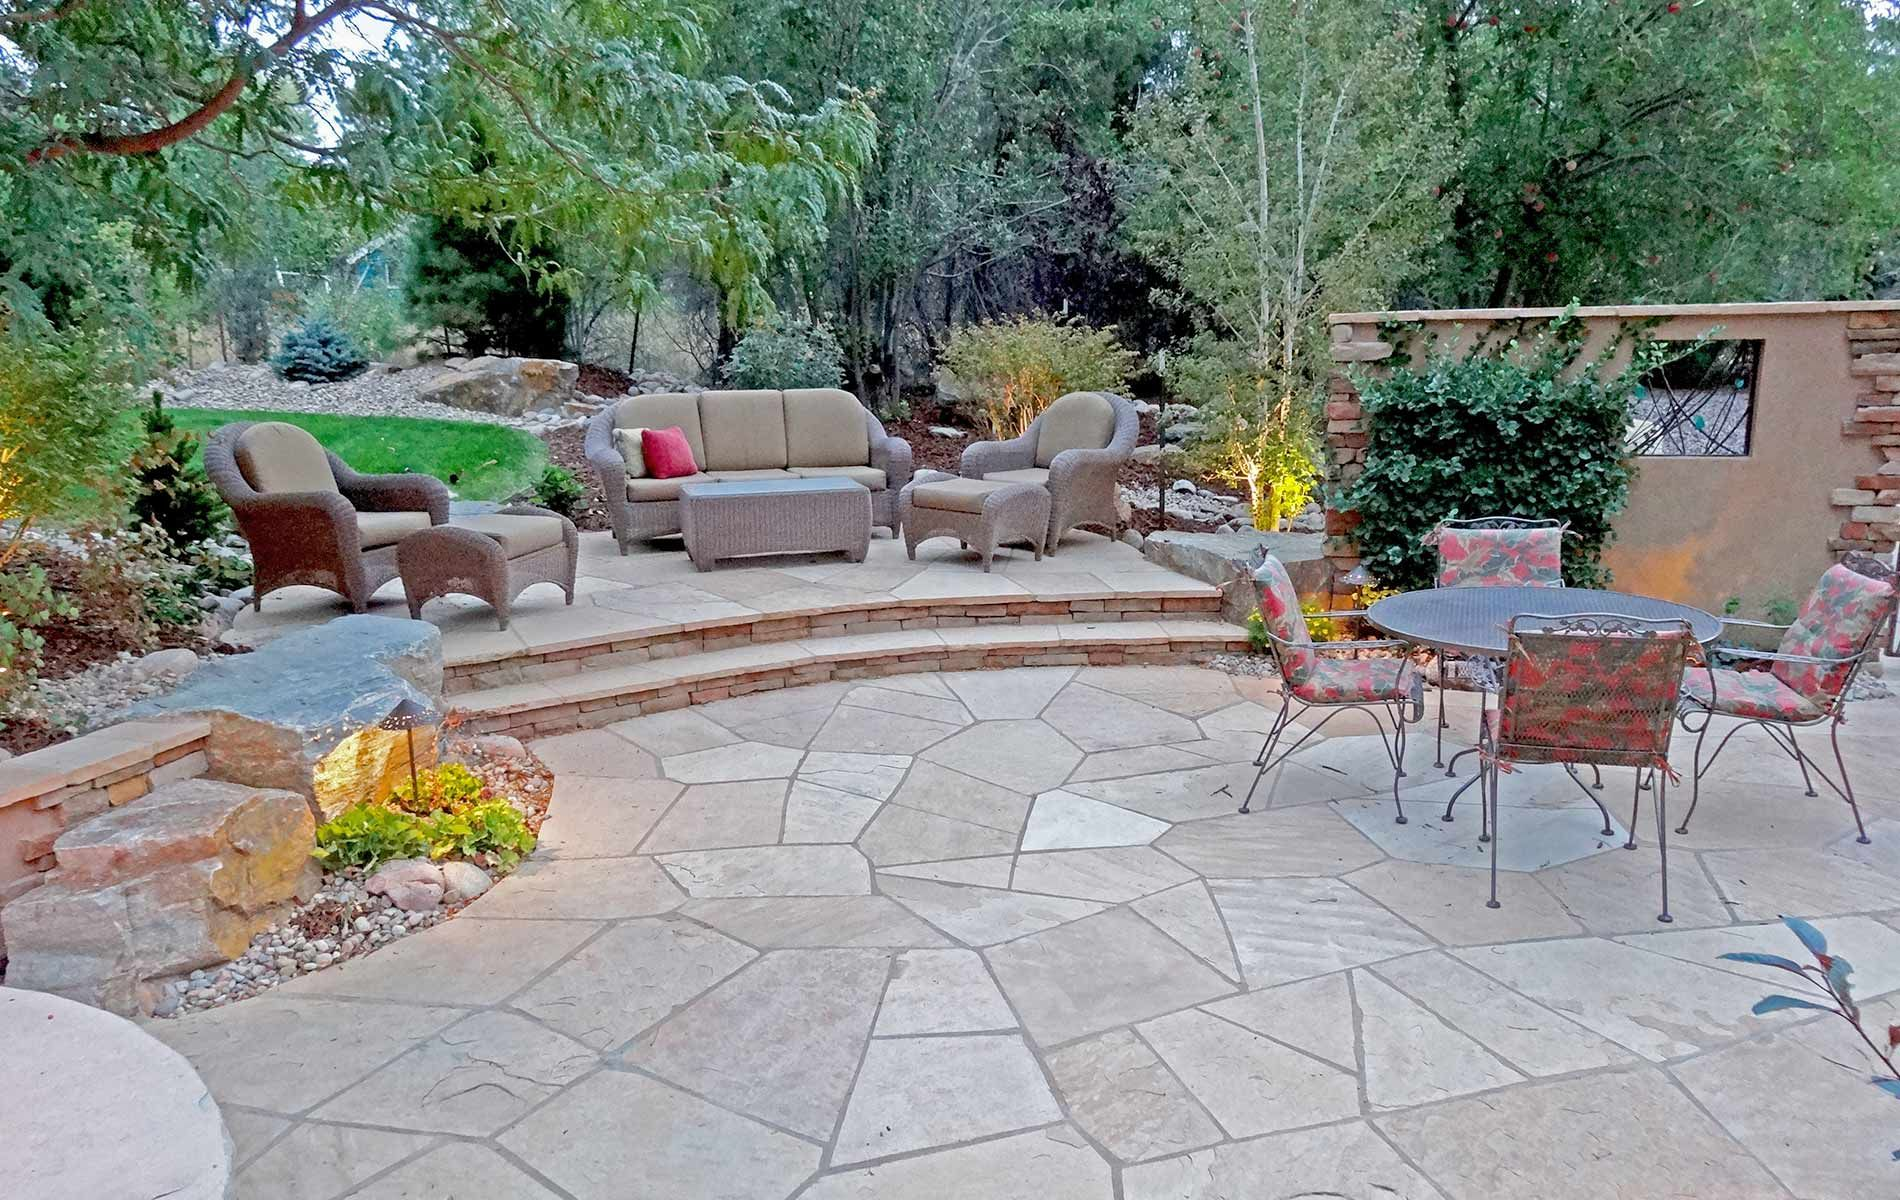 Irregular Arizona Buff Flagstone Patio With Strip Stone Stairs Leading